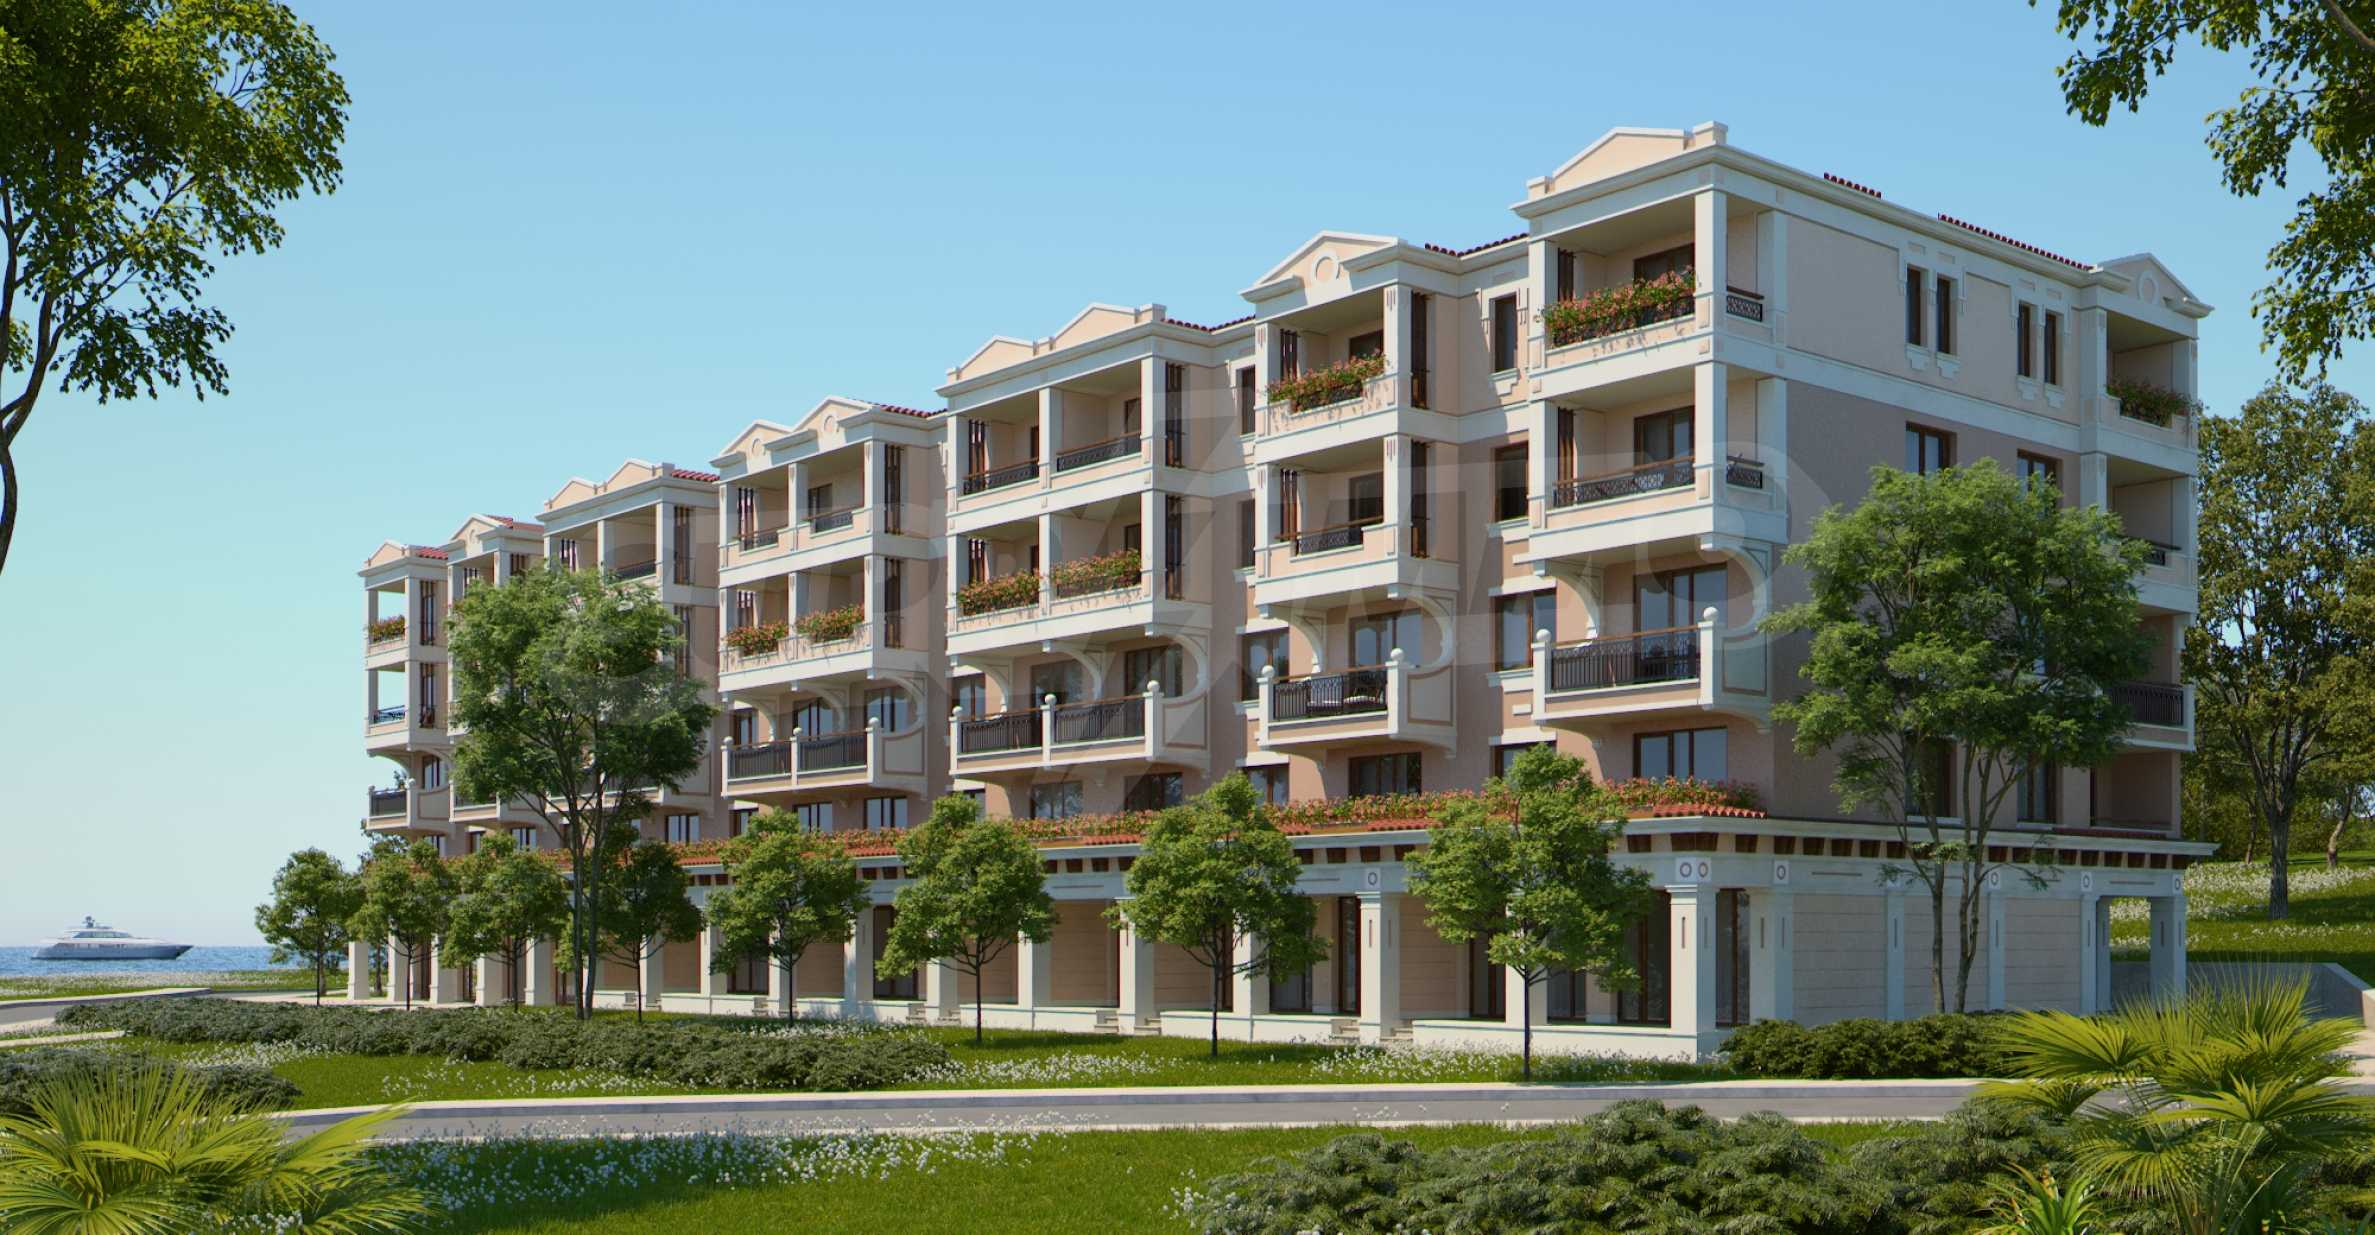 Apartment for sale in Sozopol, Bulgaria - New waterfront building in the Green Life Beach Resort.